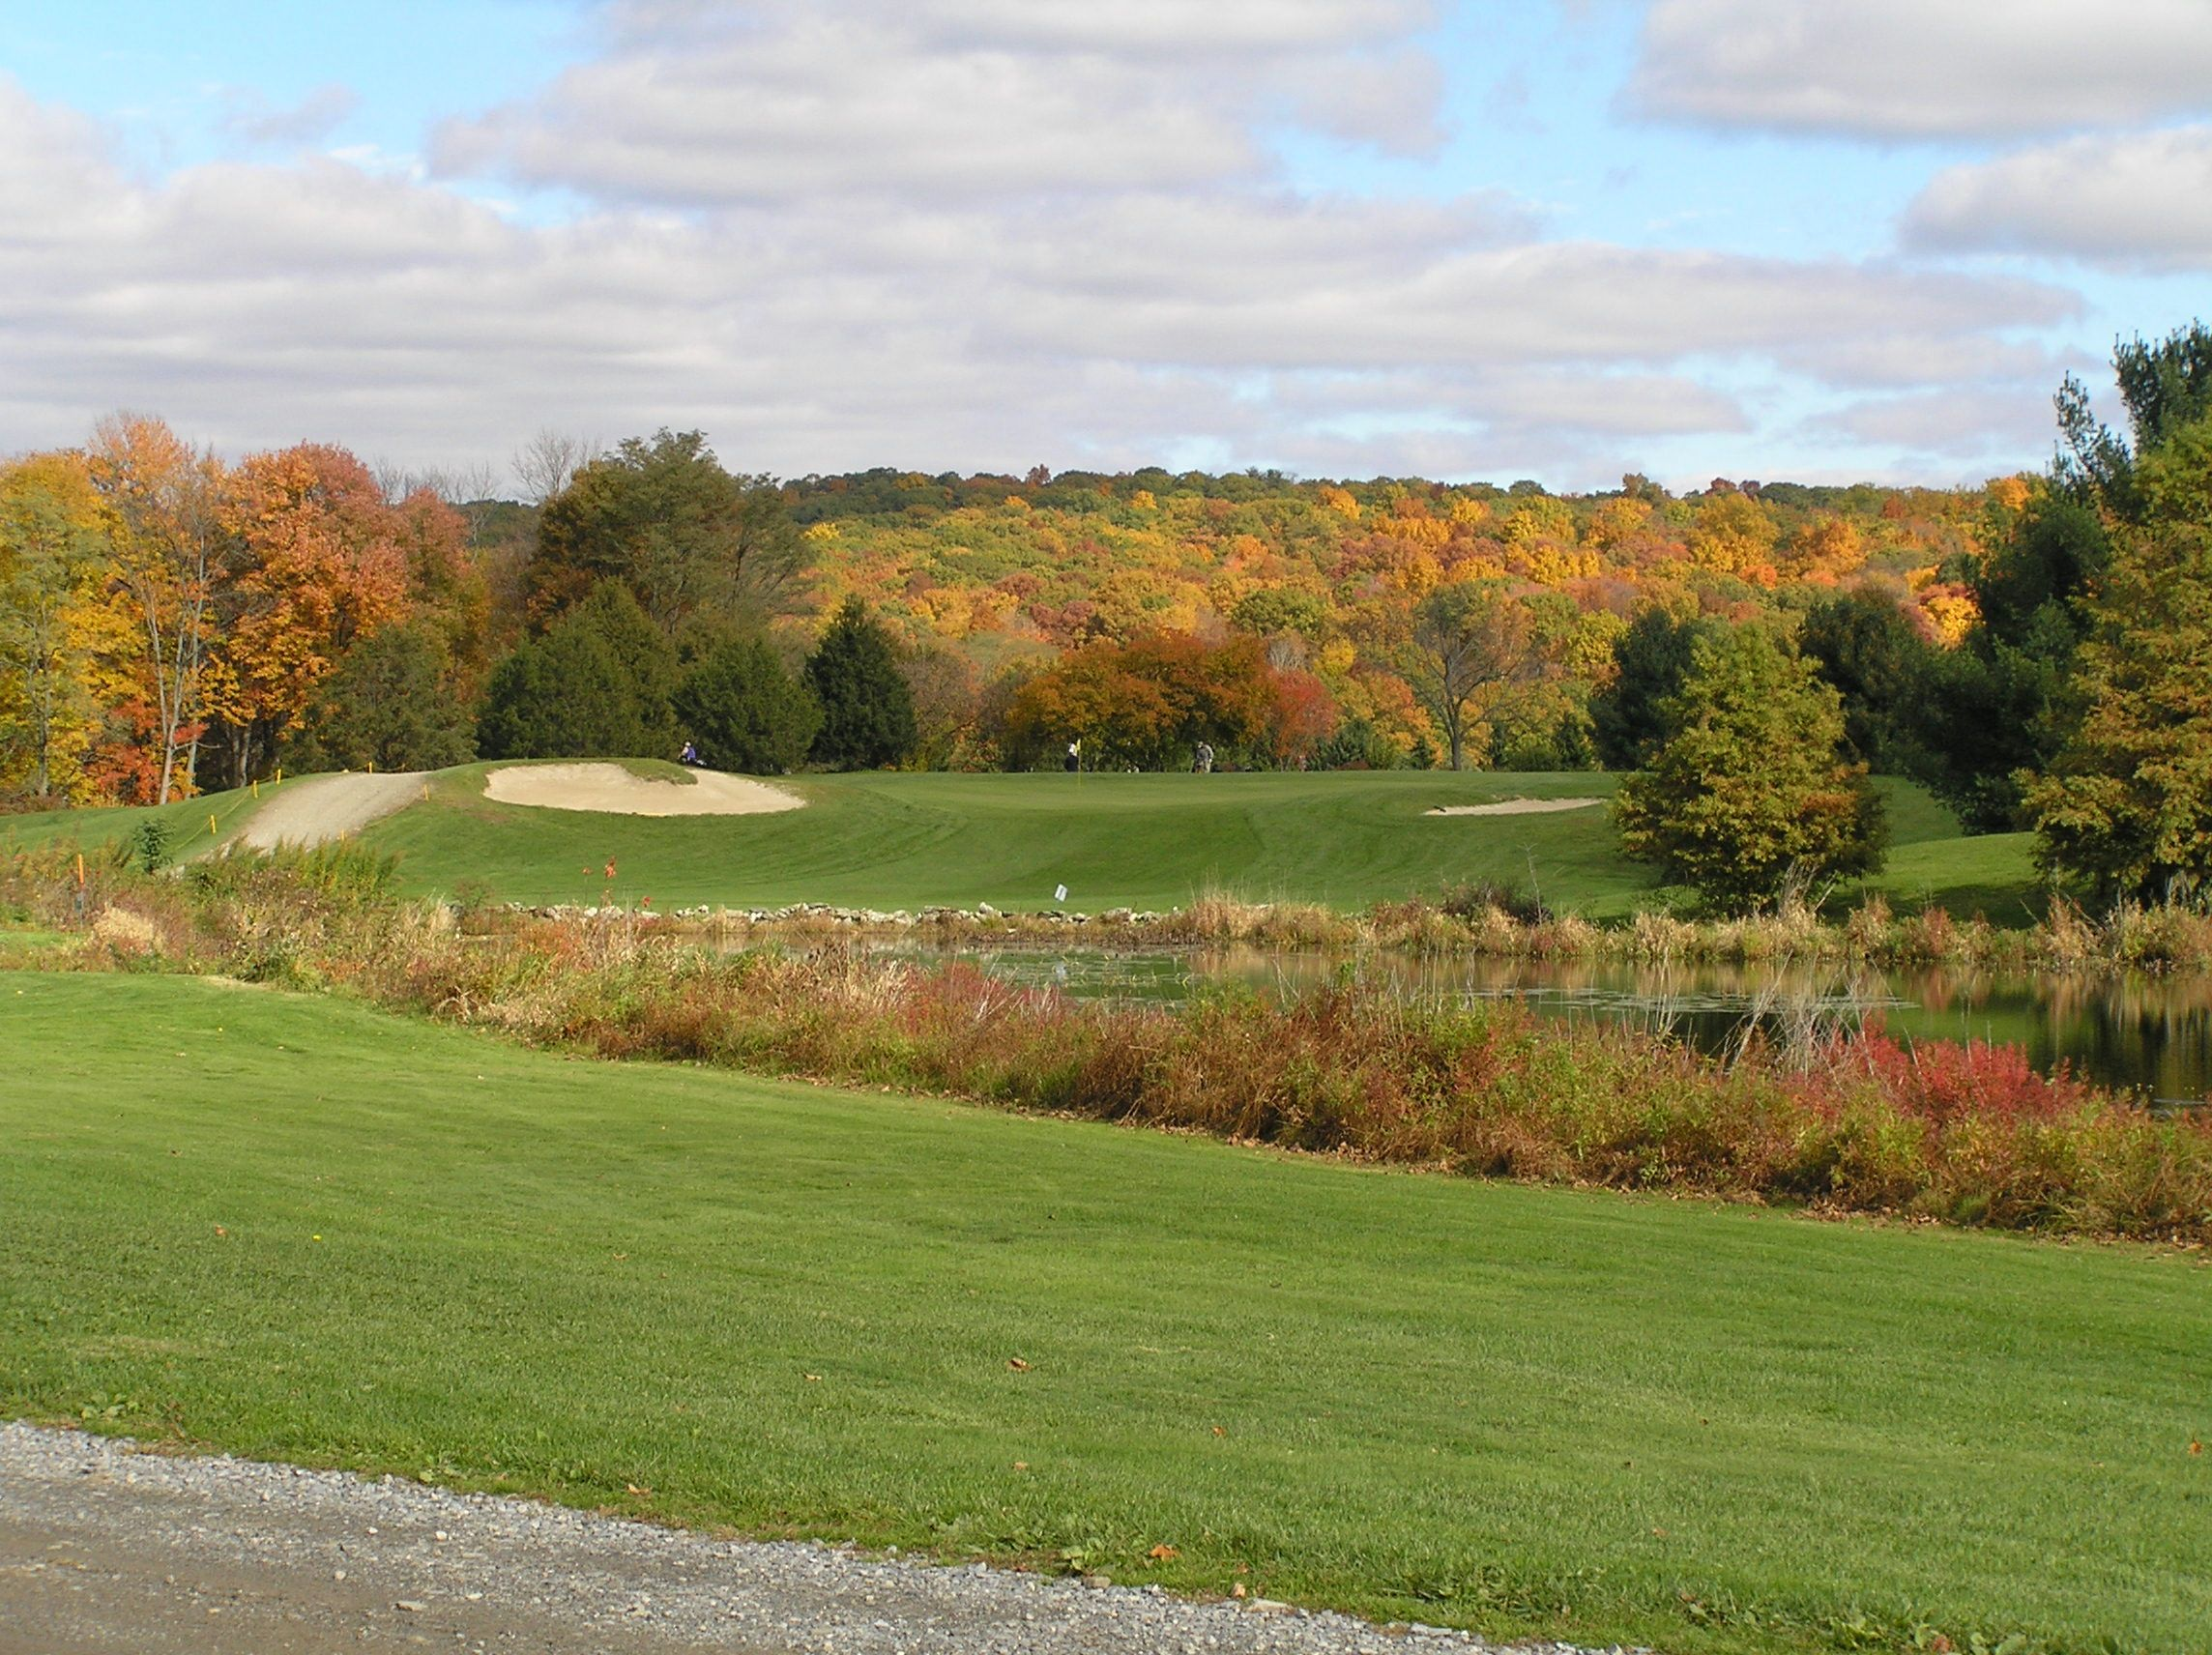 James Baird State Golf Course. Nationally renowned golf architect, Robert Trent Jones designed this scenic, fairly flat 18-hole golf course on a large tract of farmland in Pleasant Valley. To golfers' delight, the par 5, 13th hole is one of the most challenging in the Hudson Valley. - See more at: http://nysparks.com/golf-courses/1/details.aspx#sthash.ODUyw2gr.dpuf